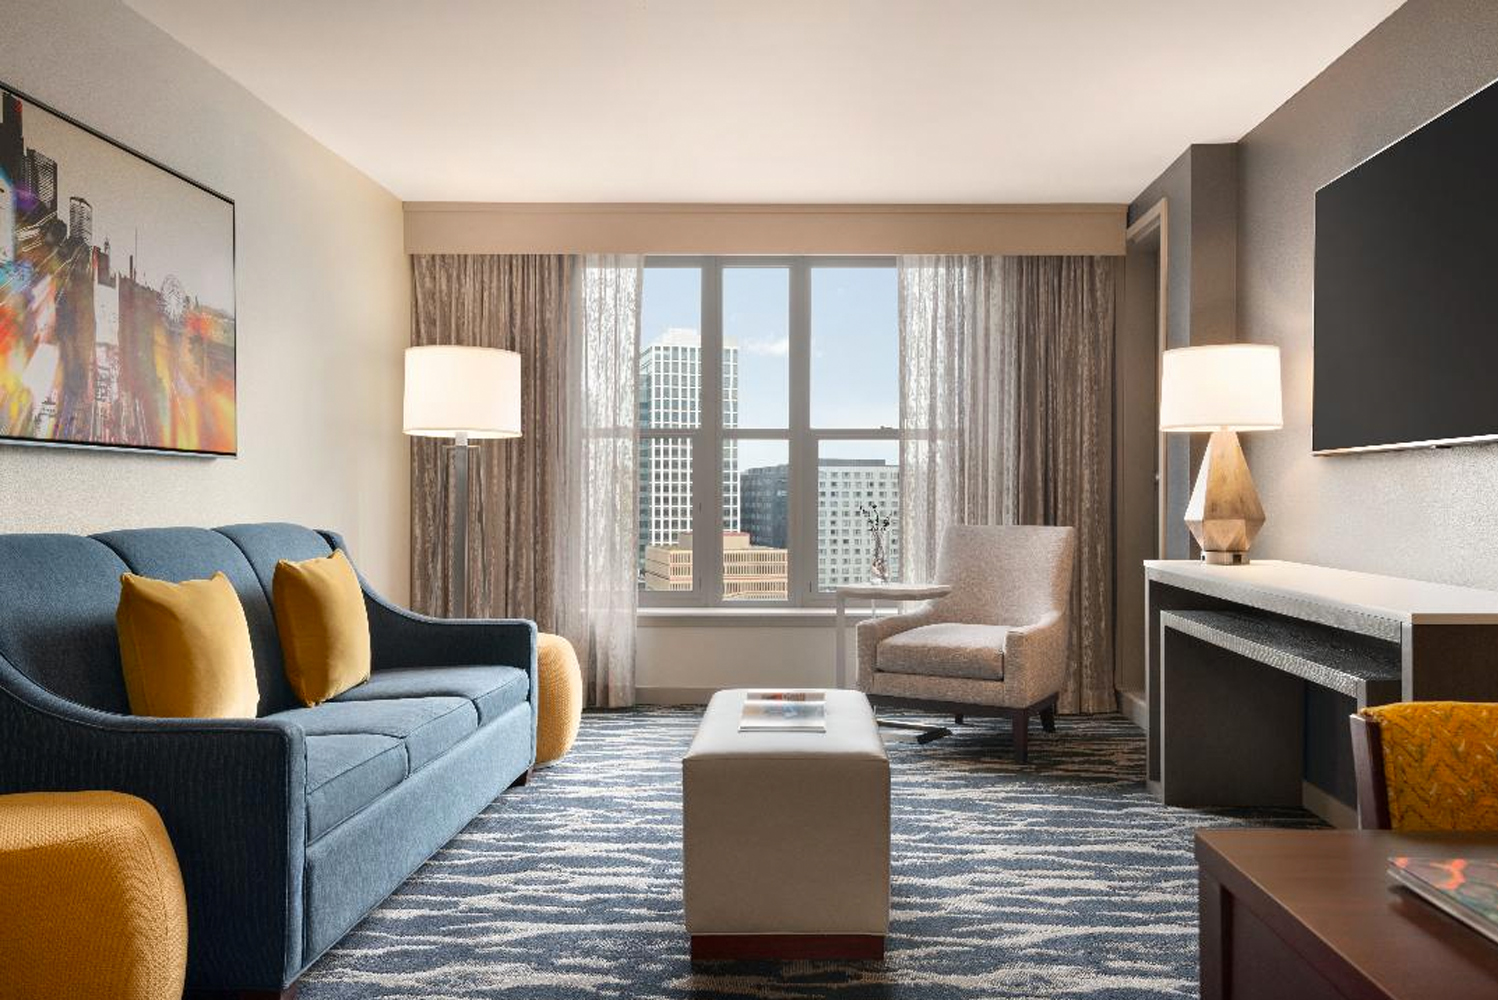 Homewood Suites by Hilton Convention Center Pike Street completed a renovation project that began in fall 2018.